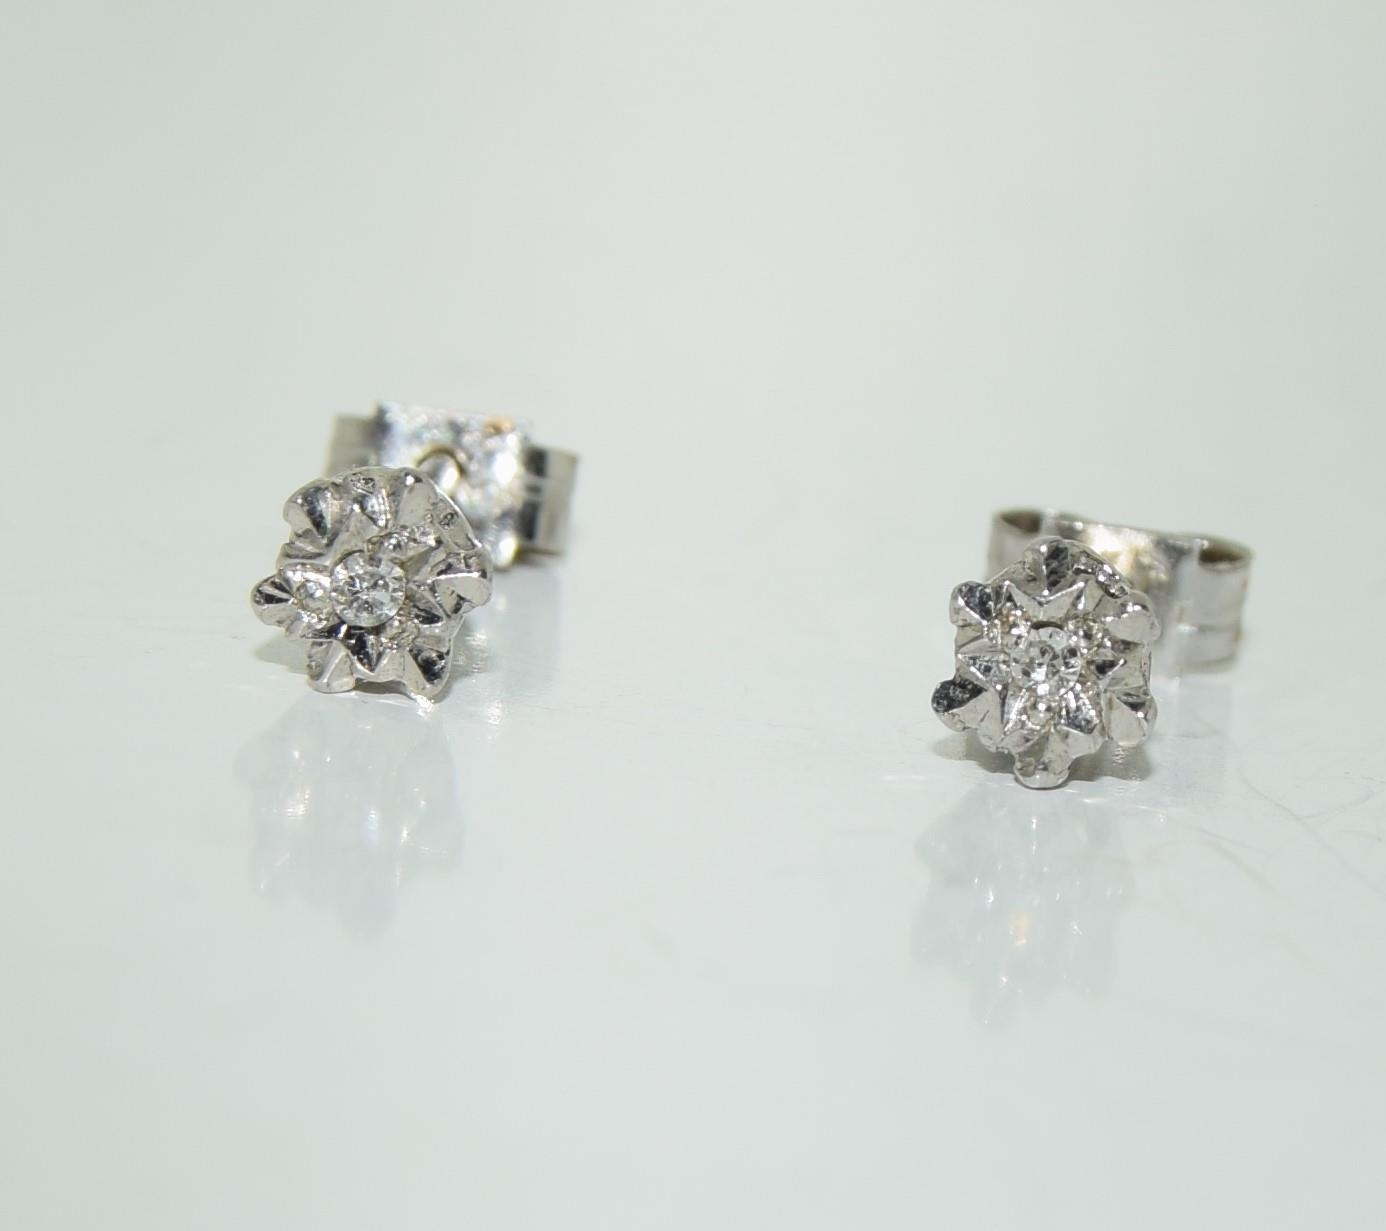 A pair of white gold diamond stud earrings. - Image 2 of 4